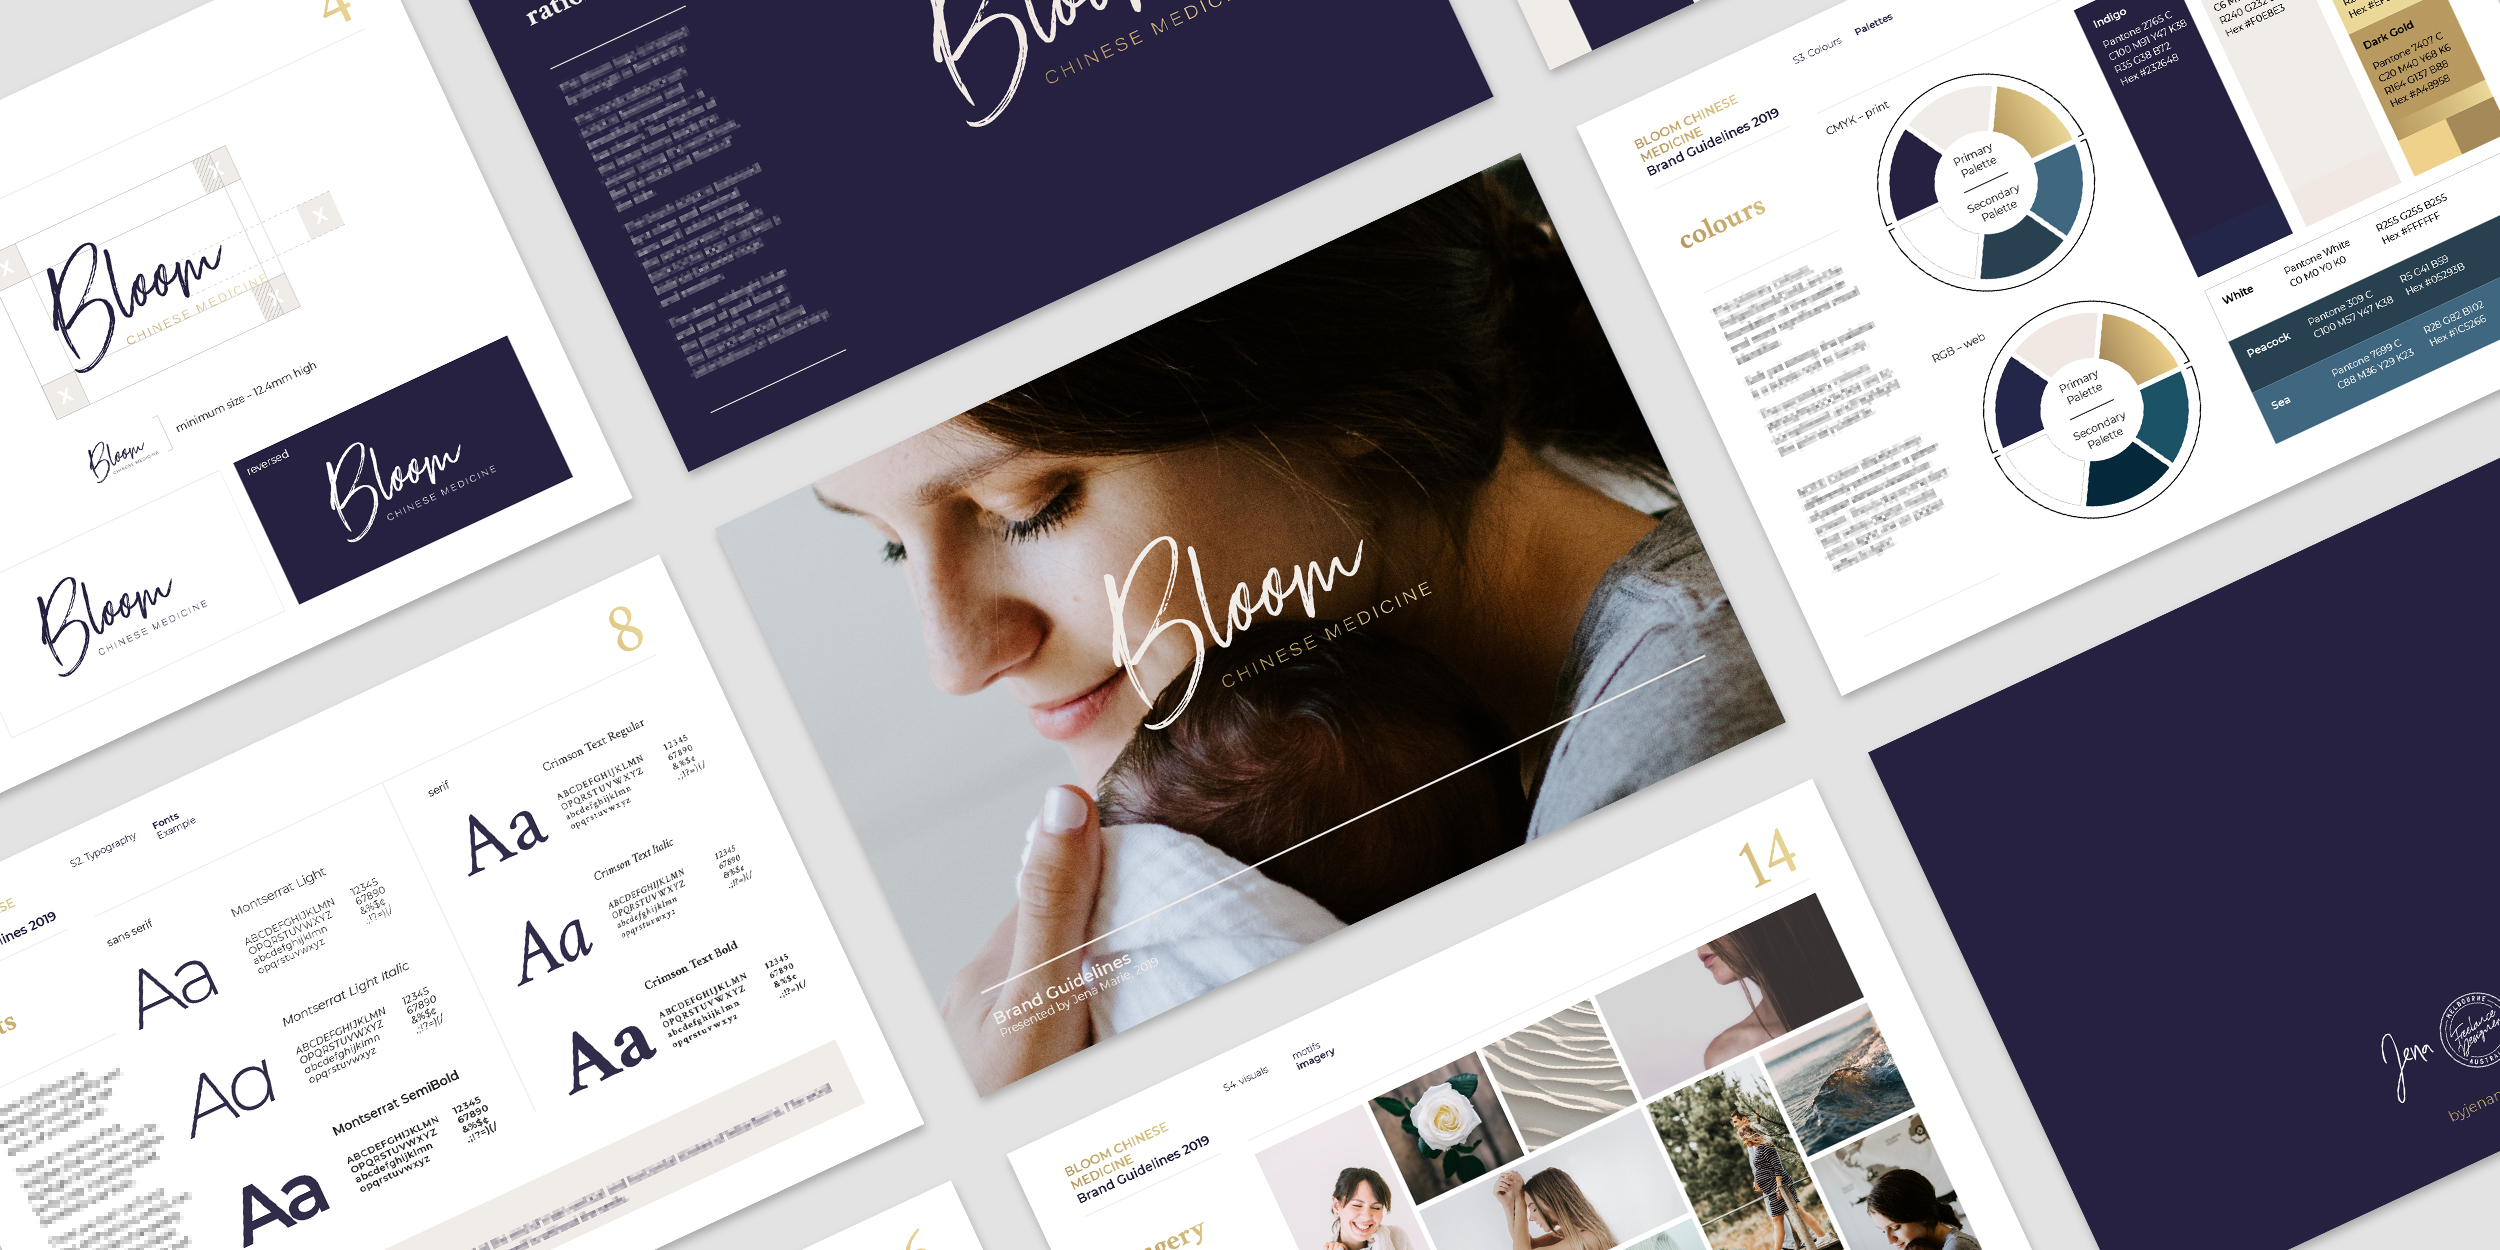 Bloom Chinese Medicine branding guidelines pages mocked up.